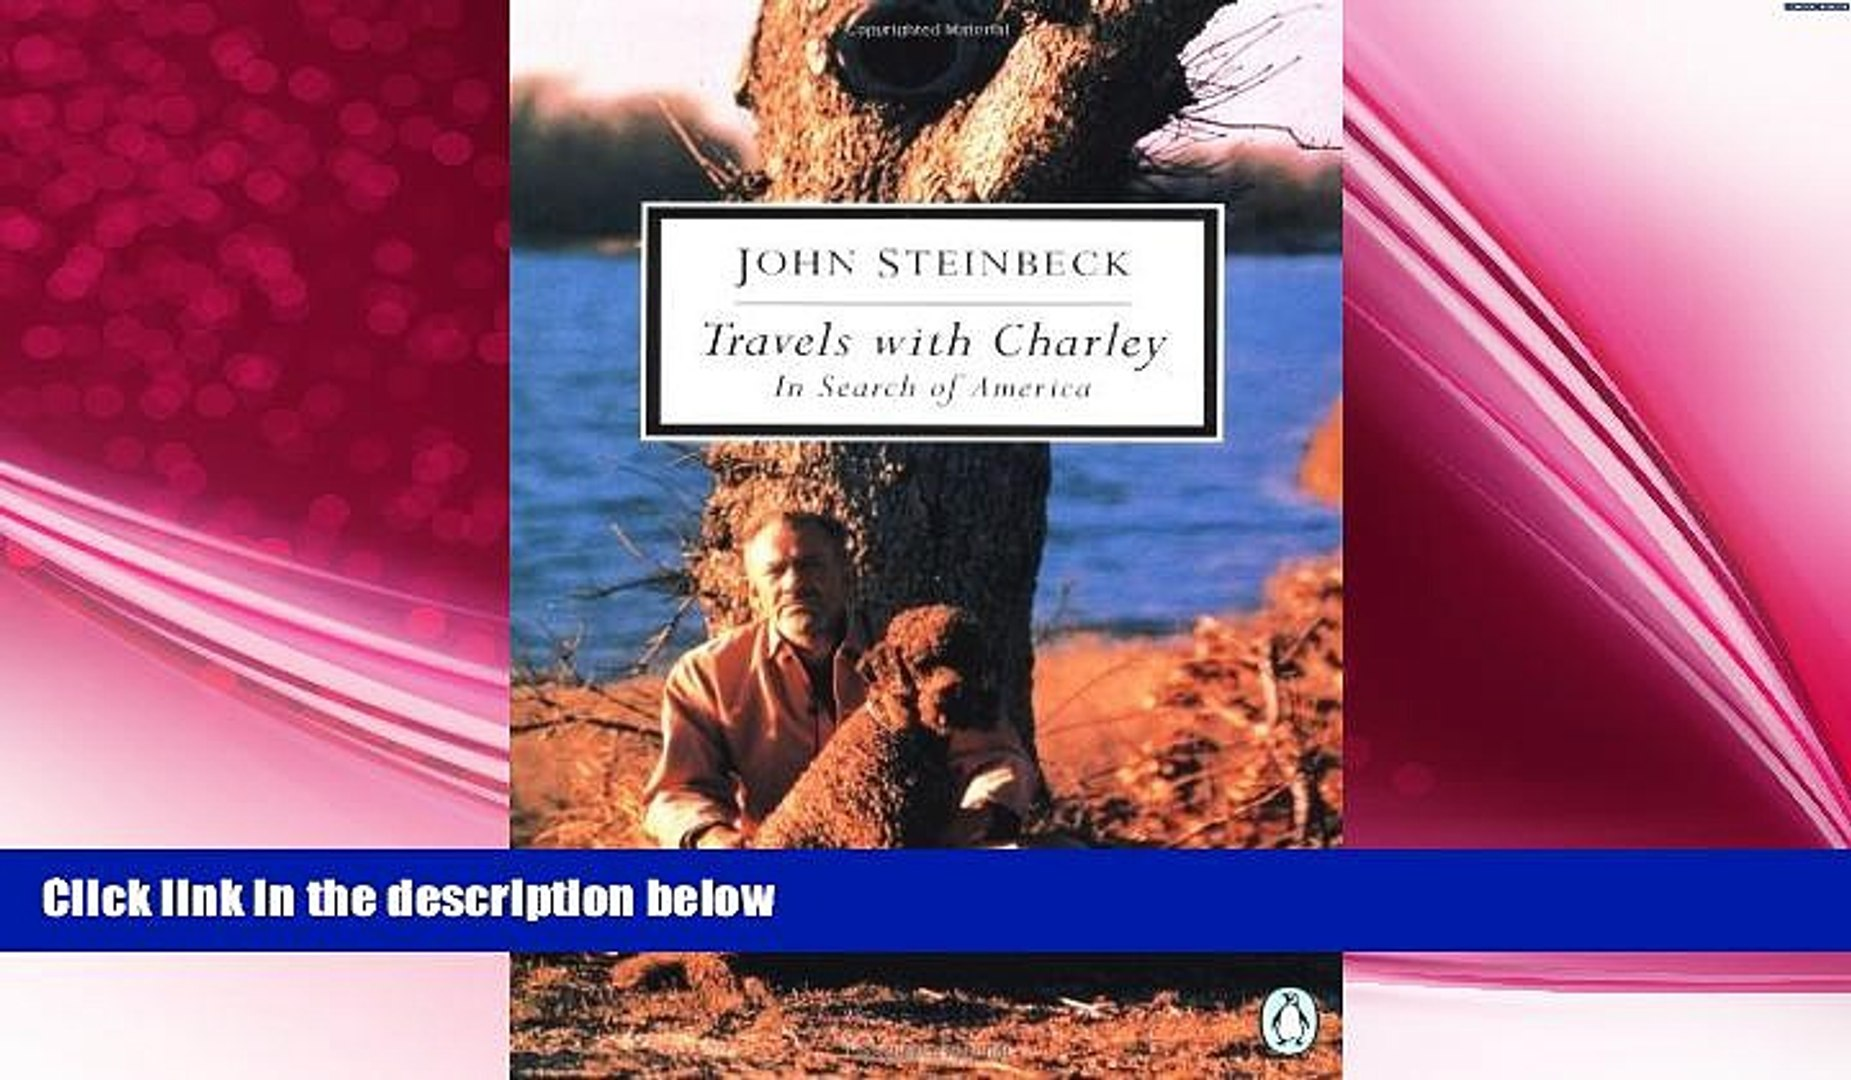 different   TRAVELS WITH CHARLEY IN SEARCH OF AMERICA [Travels with Charley in Search of America